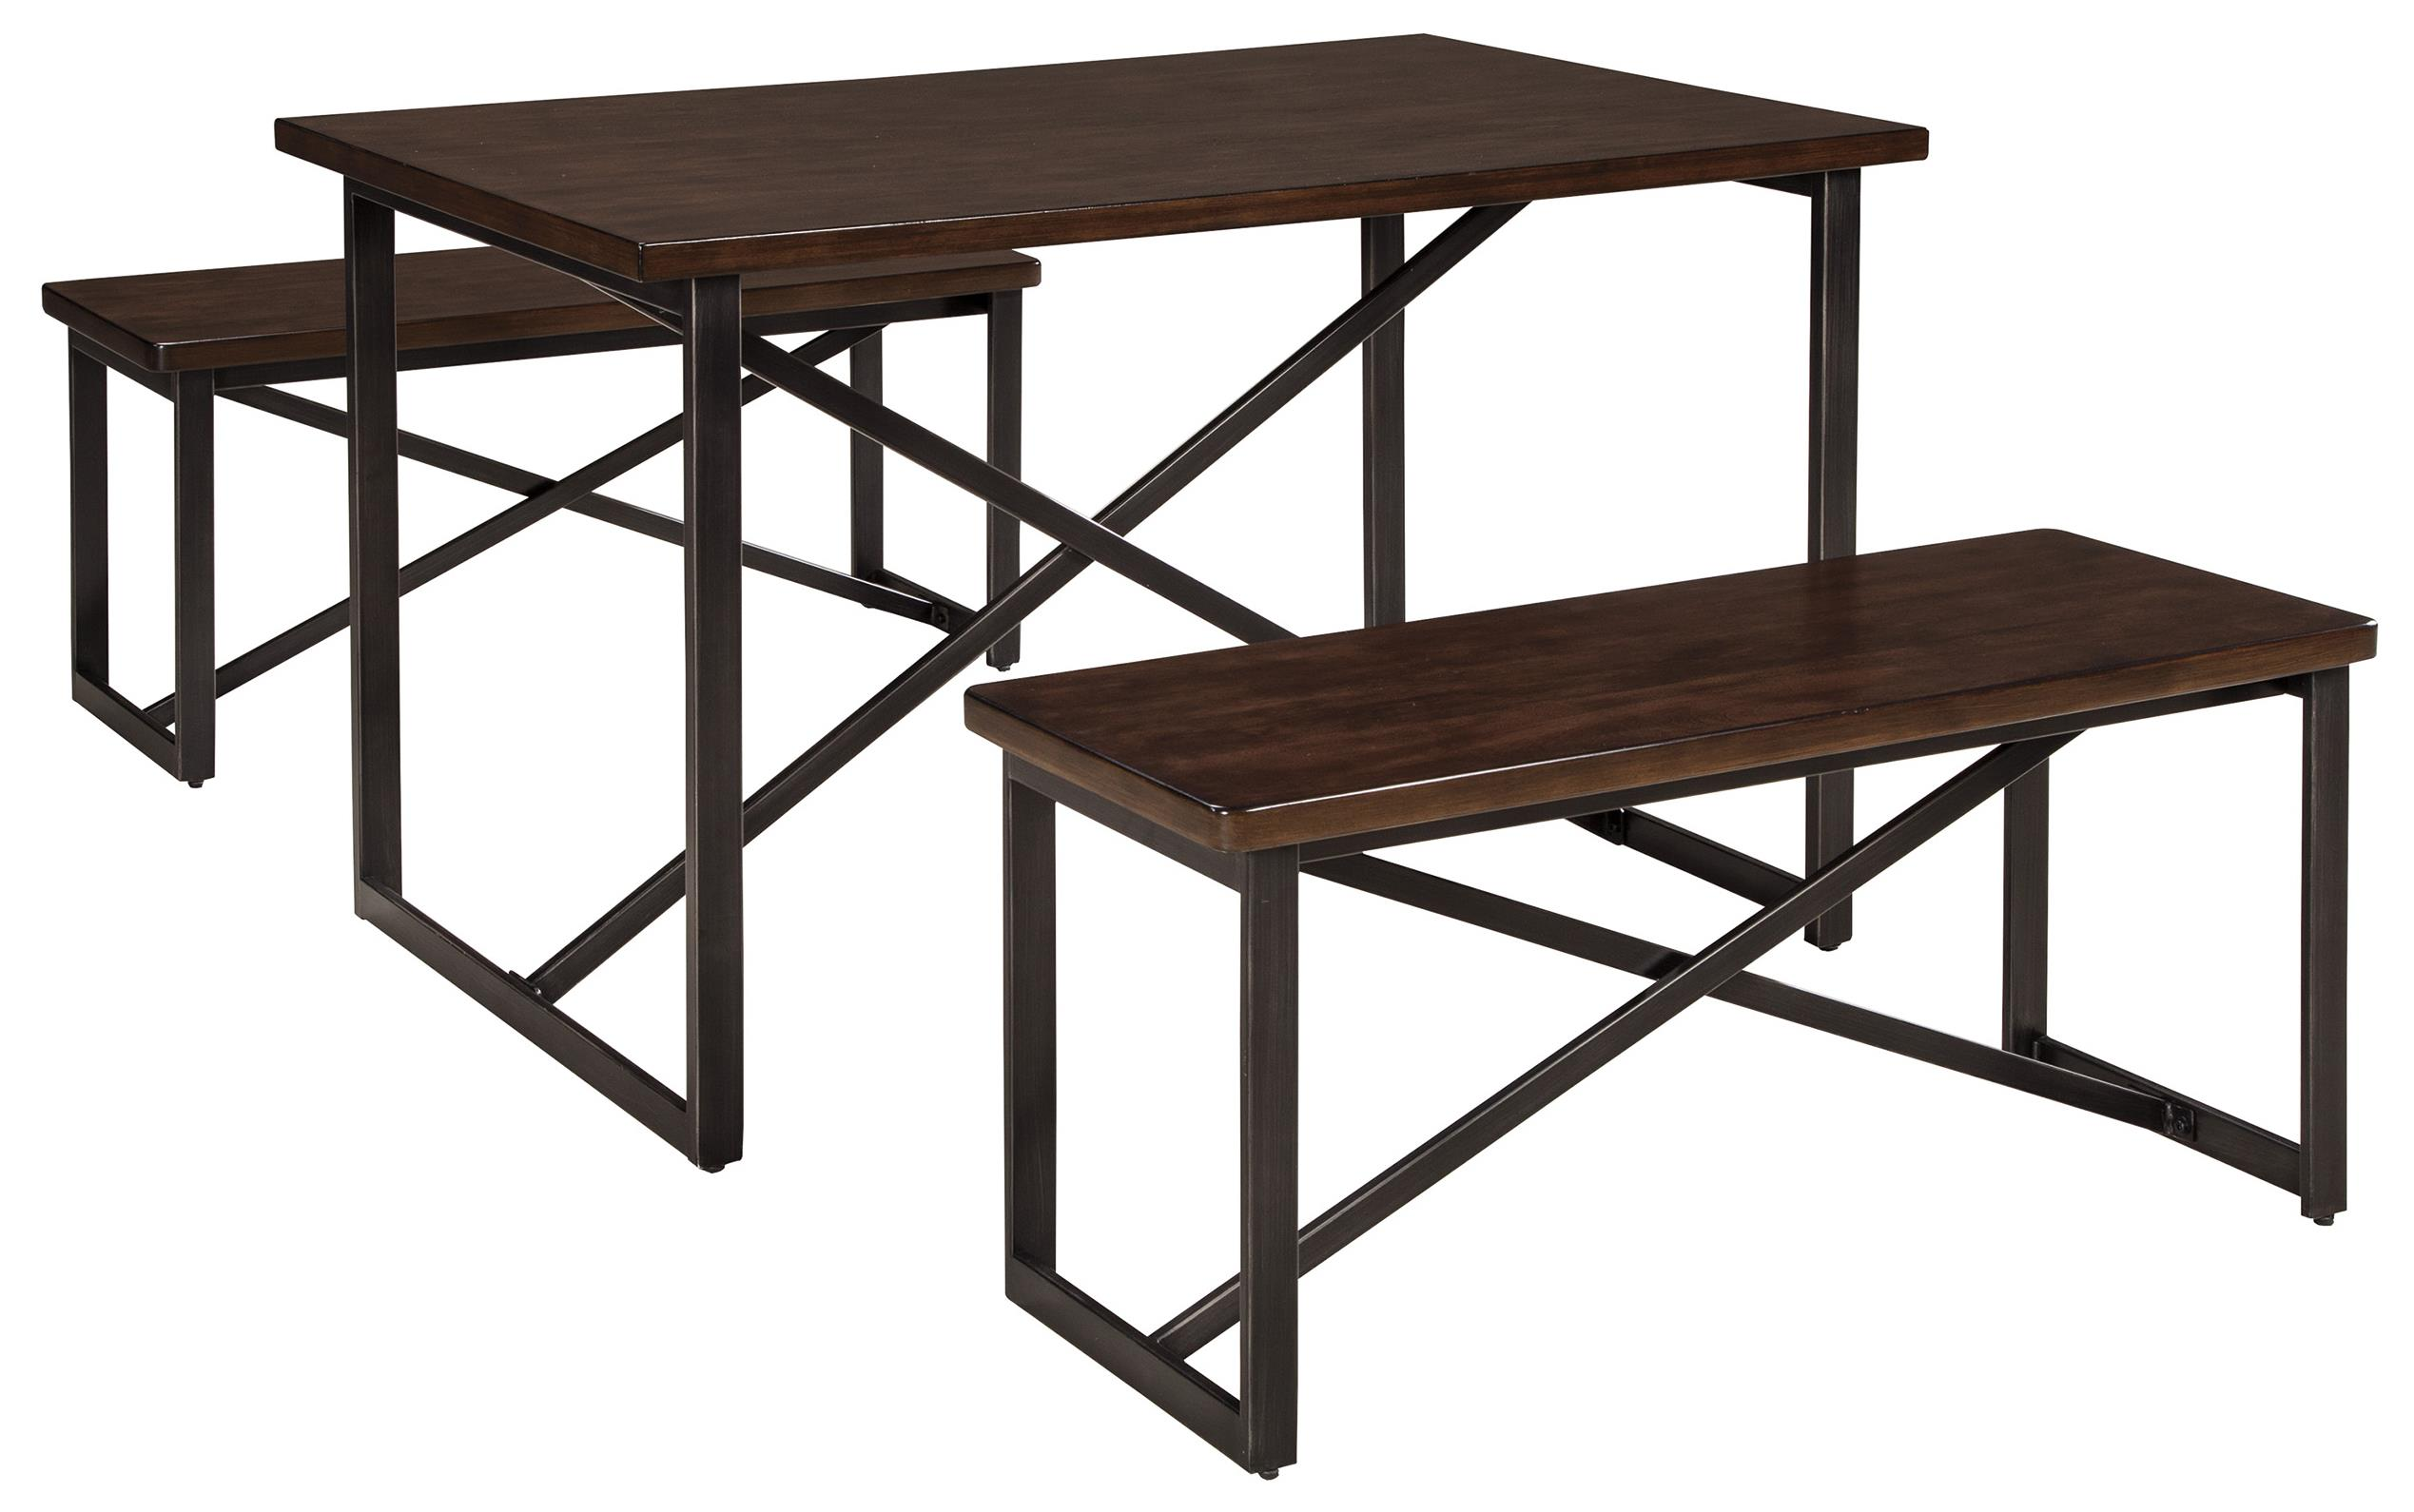 Signature Design by Ashley Joring Rectangular Dining Room Table Set - Item Number: D301-125